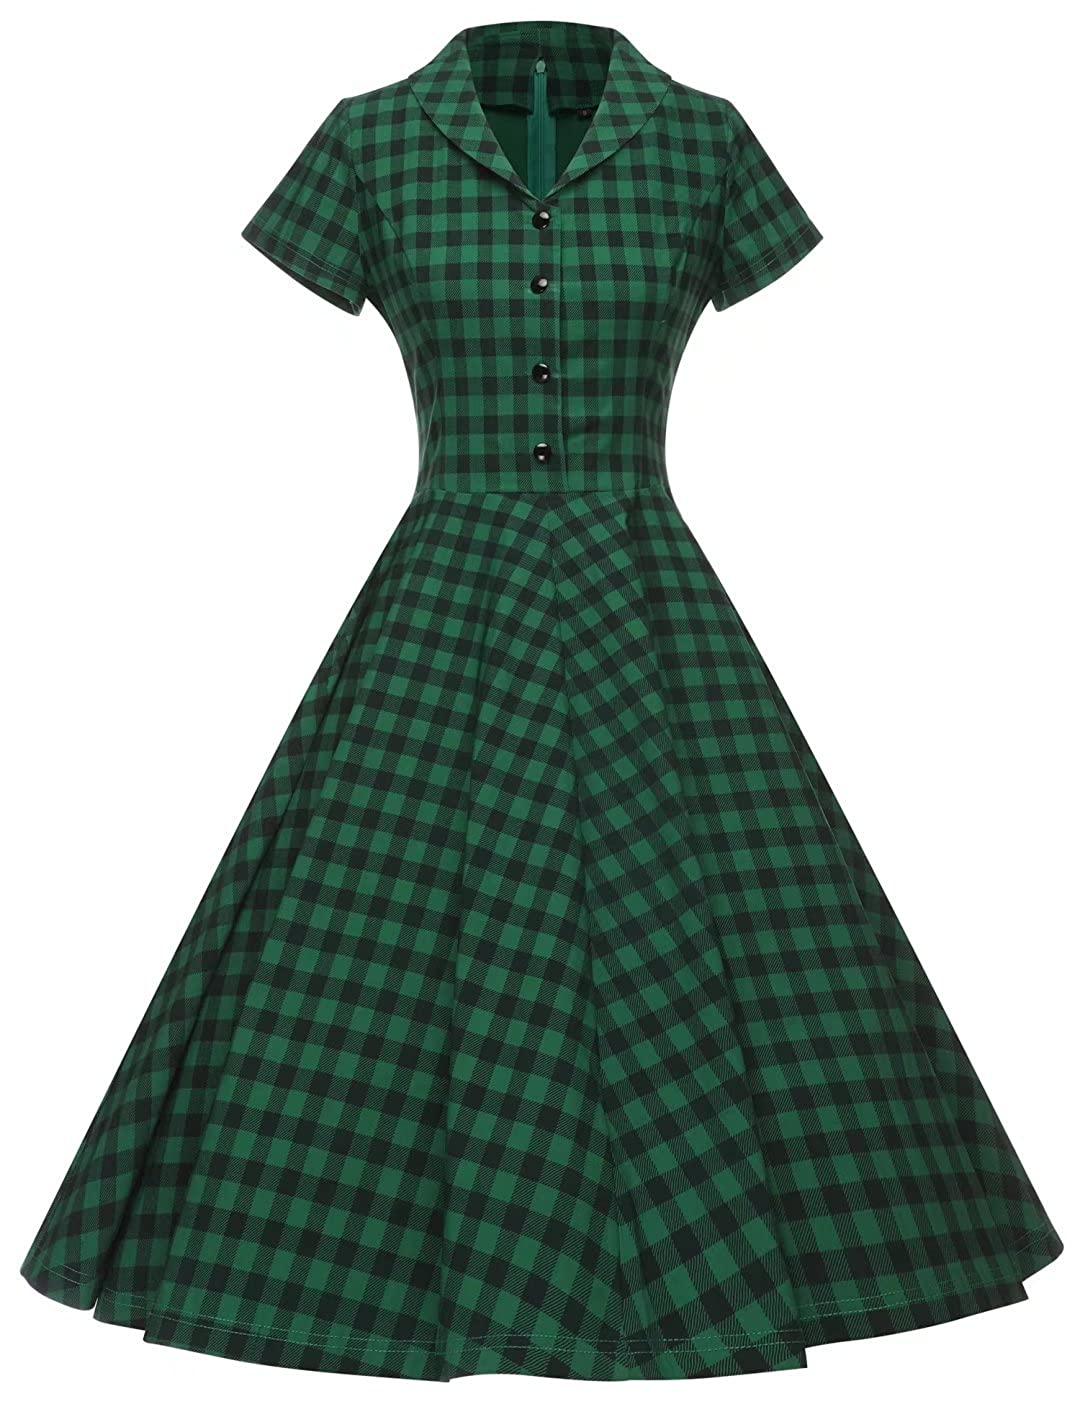 Swing Dance Clothing You Can Dance In GownTown Womens 1950s Vintage Cap Sleeve Plaid Swing Dress with Pockets $38.98 AT vintagedancer.com